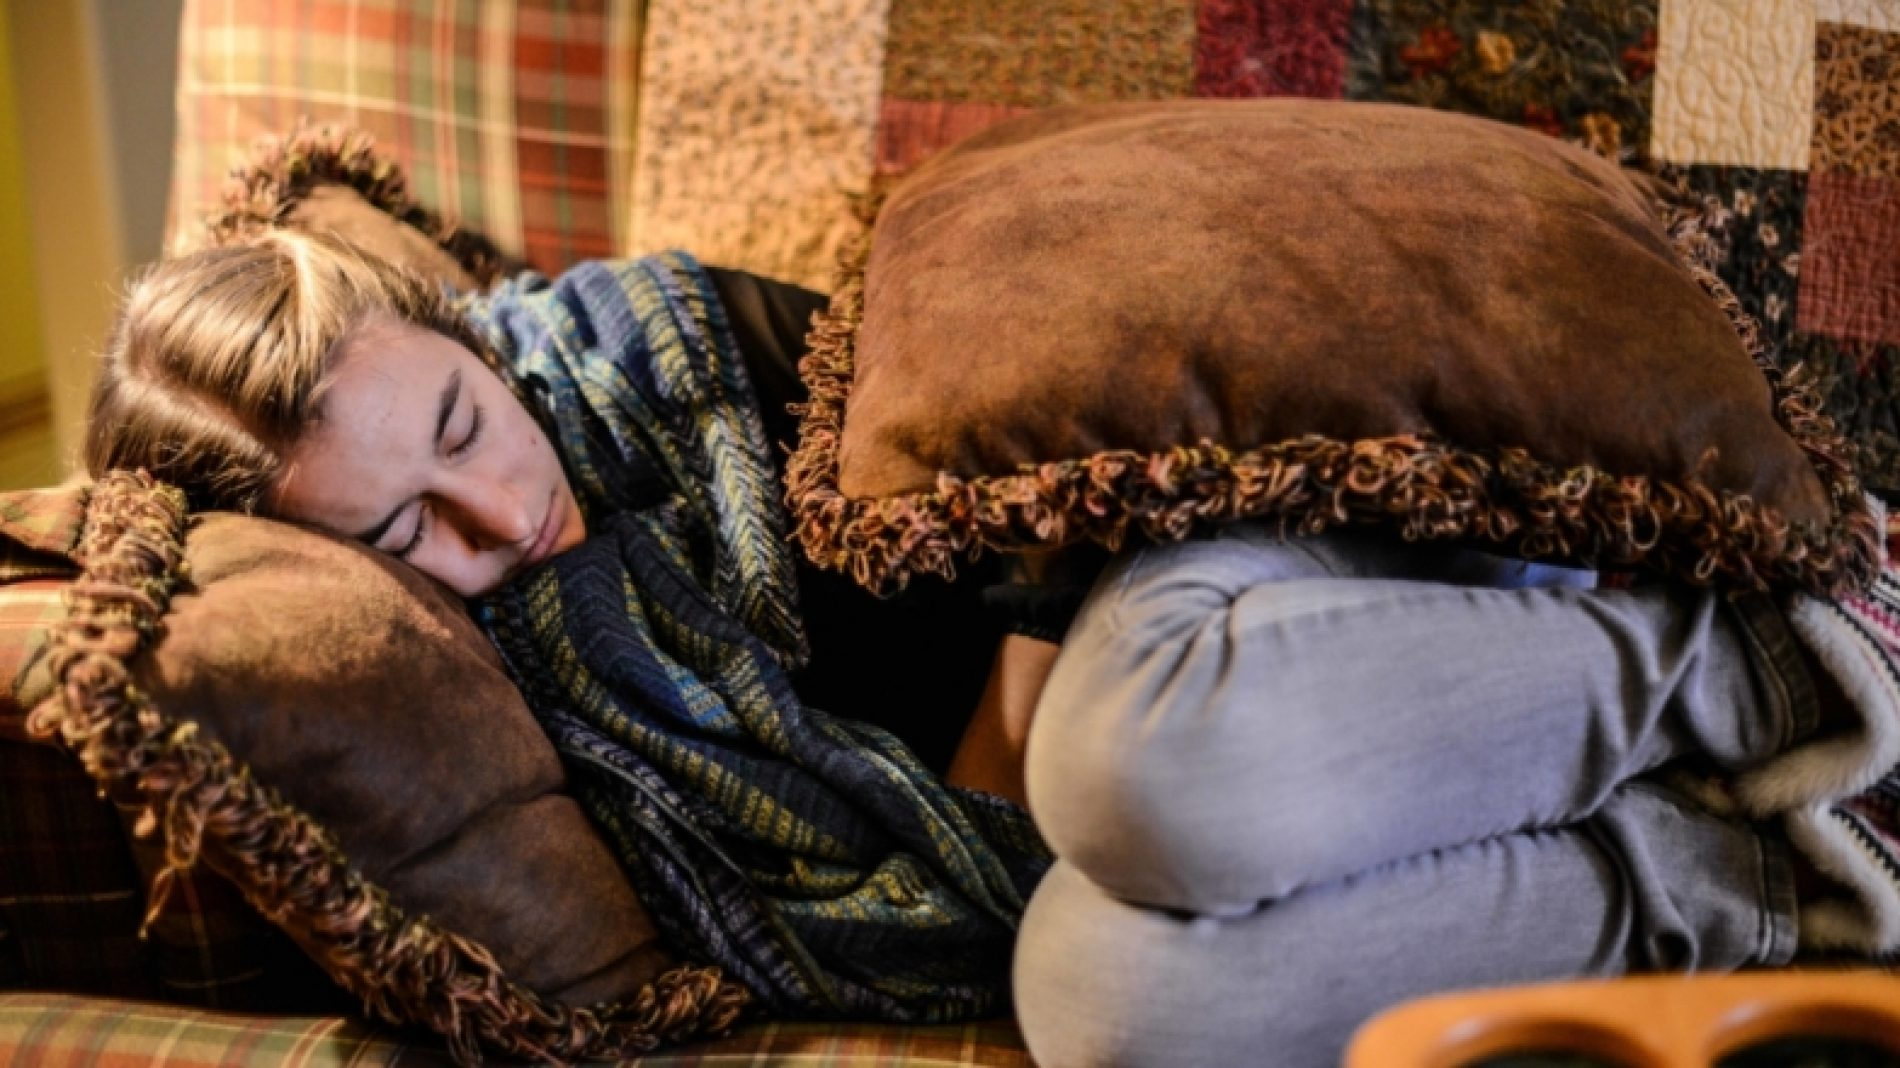 Young-person-sleeping-on-a-couch-7NEtHz